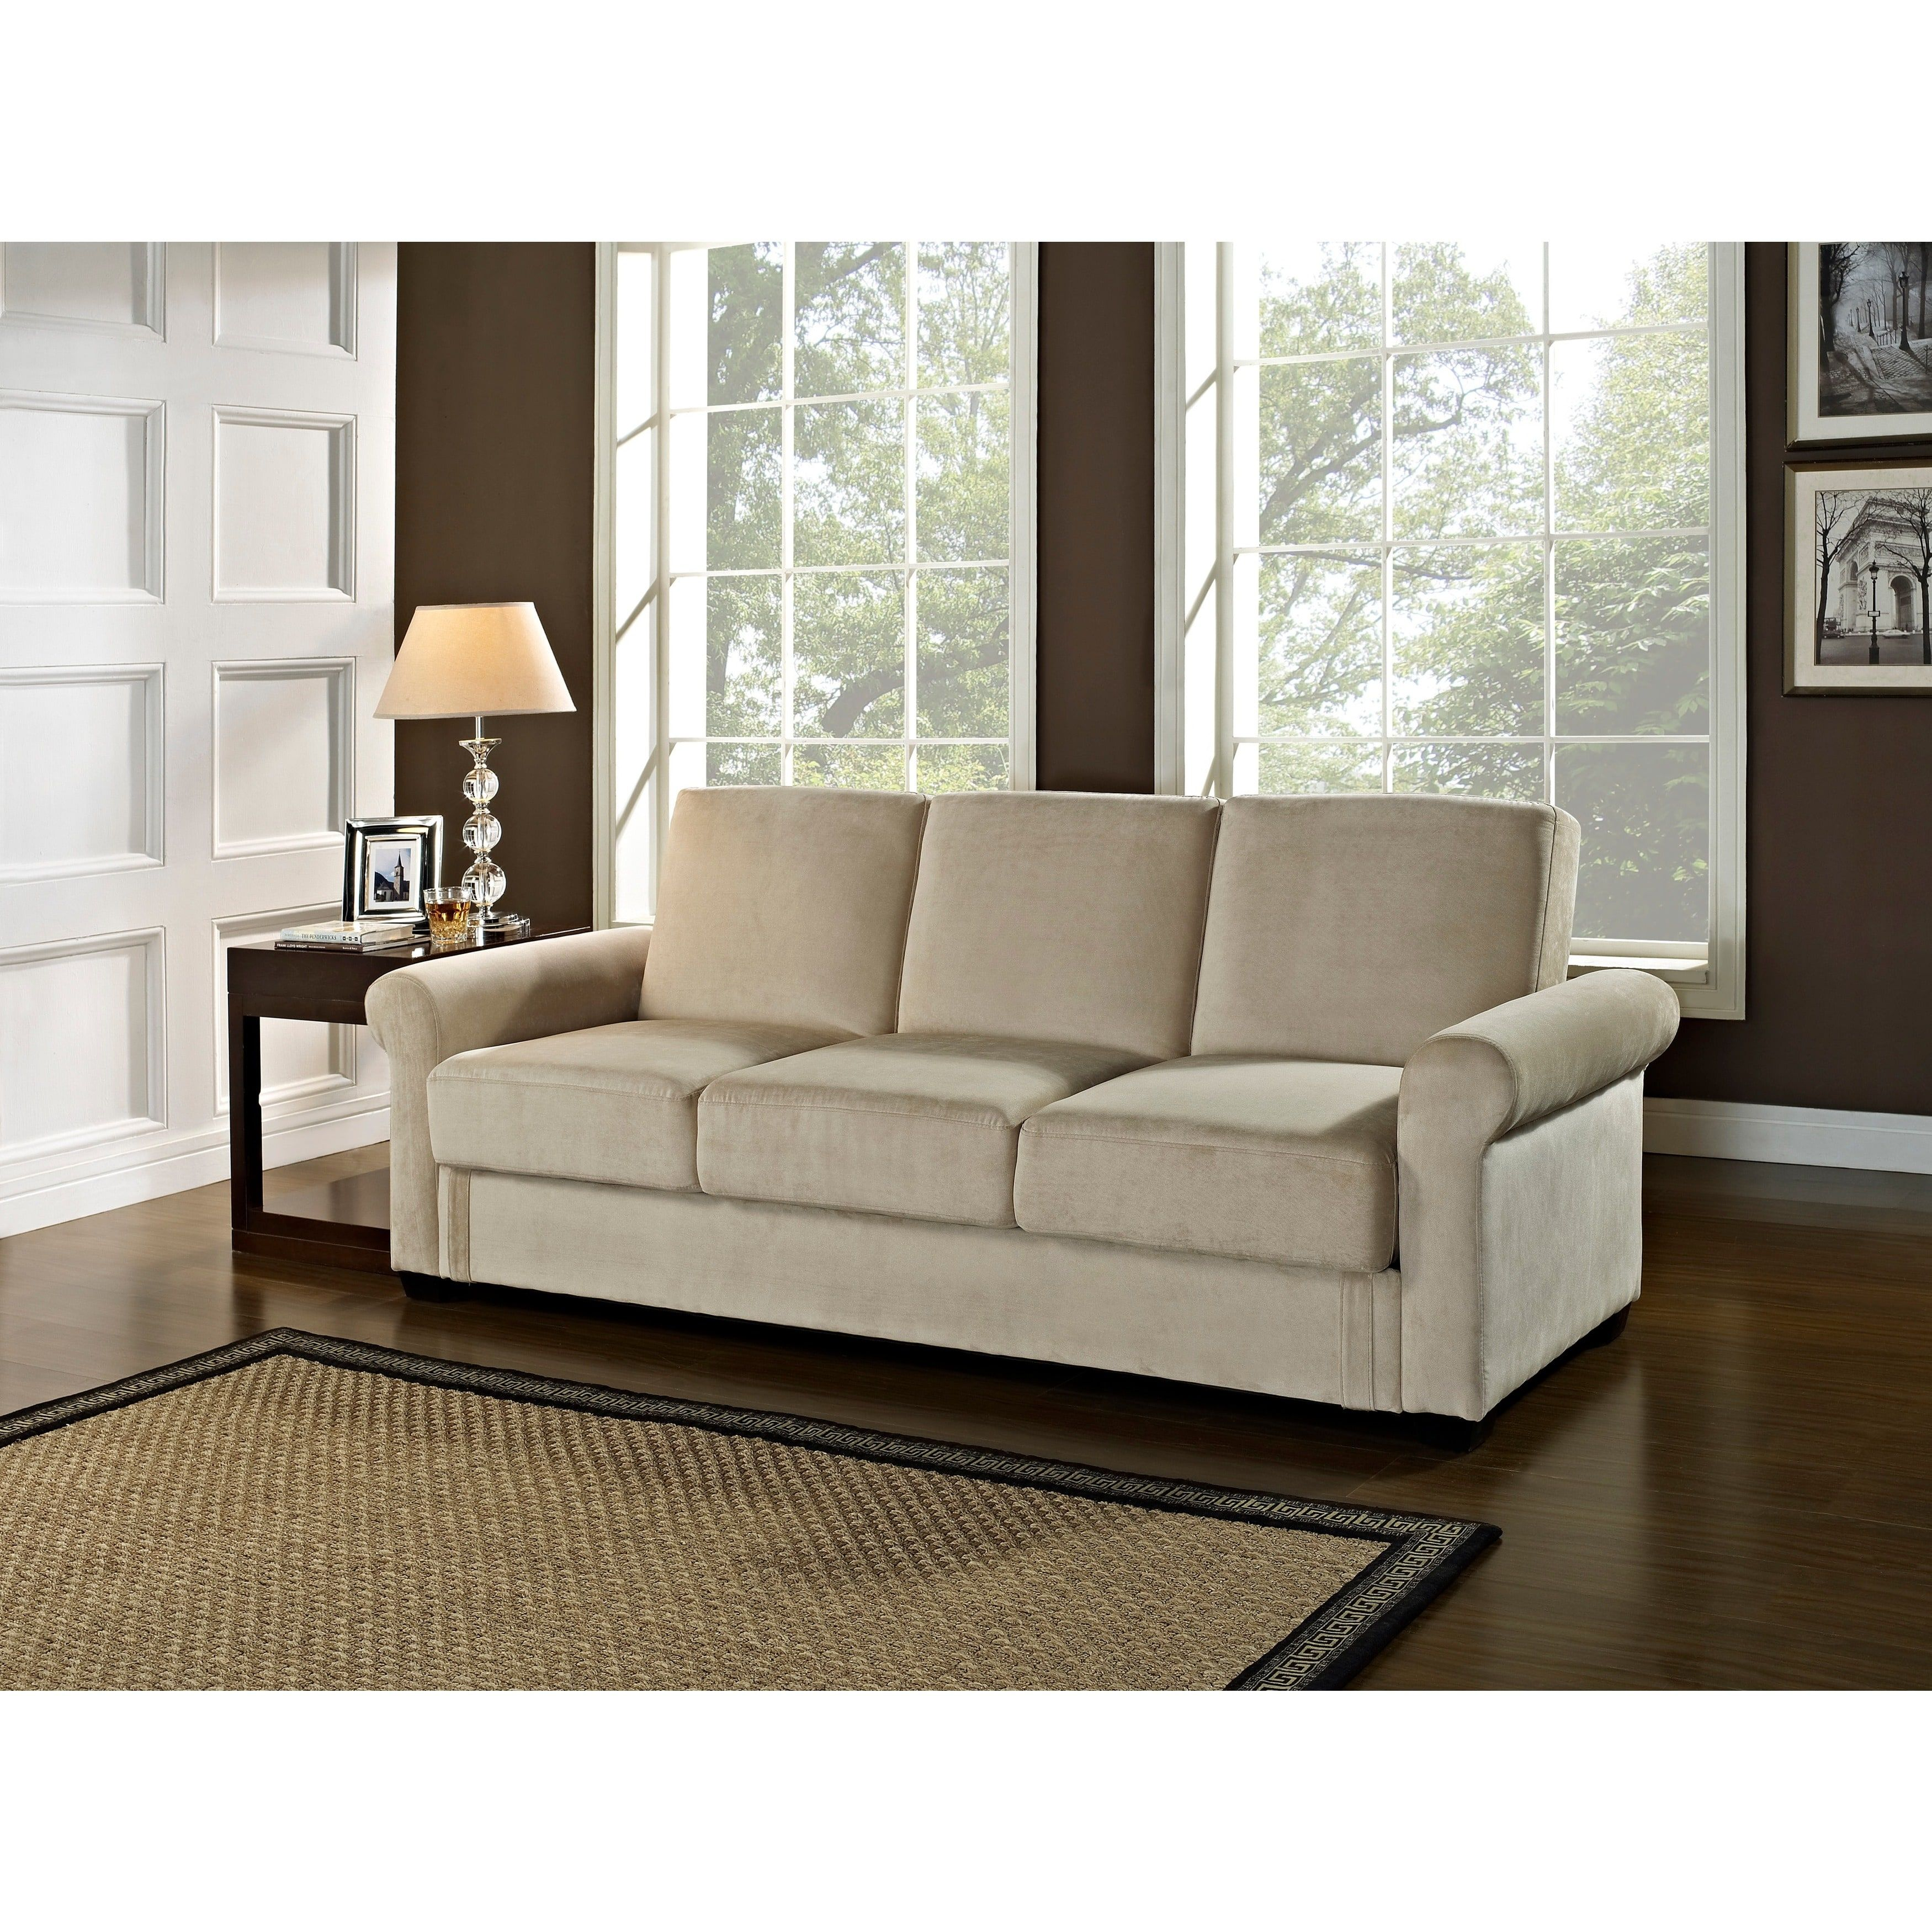 Best Serta Toronto Convertible Sofa By Lifestyle Solutions 400 x 300